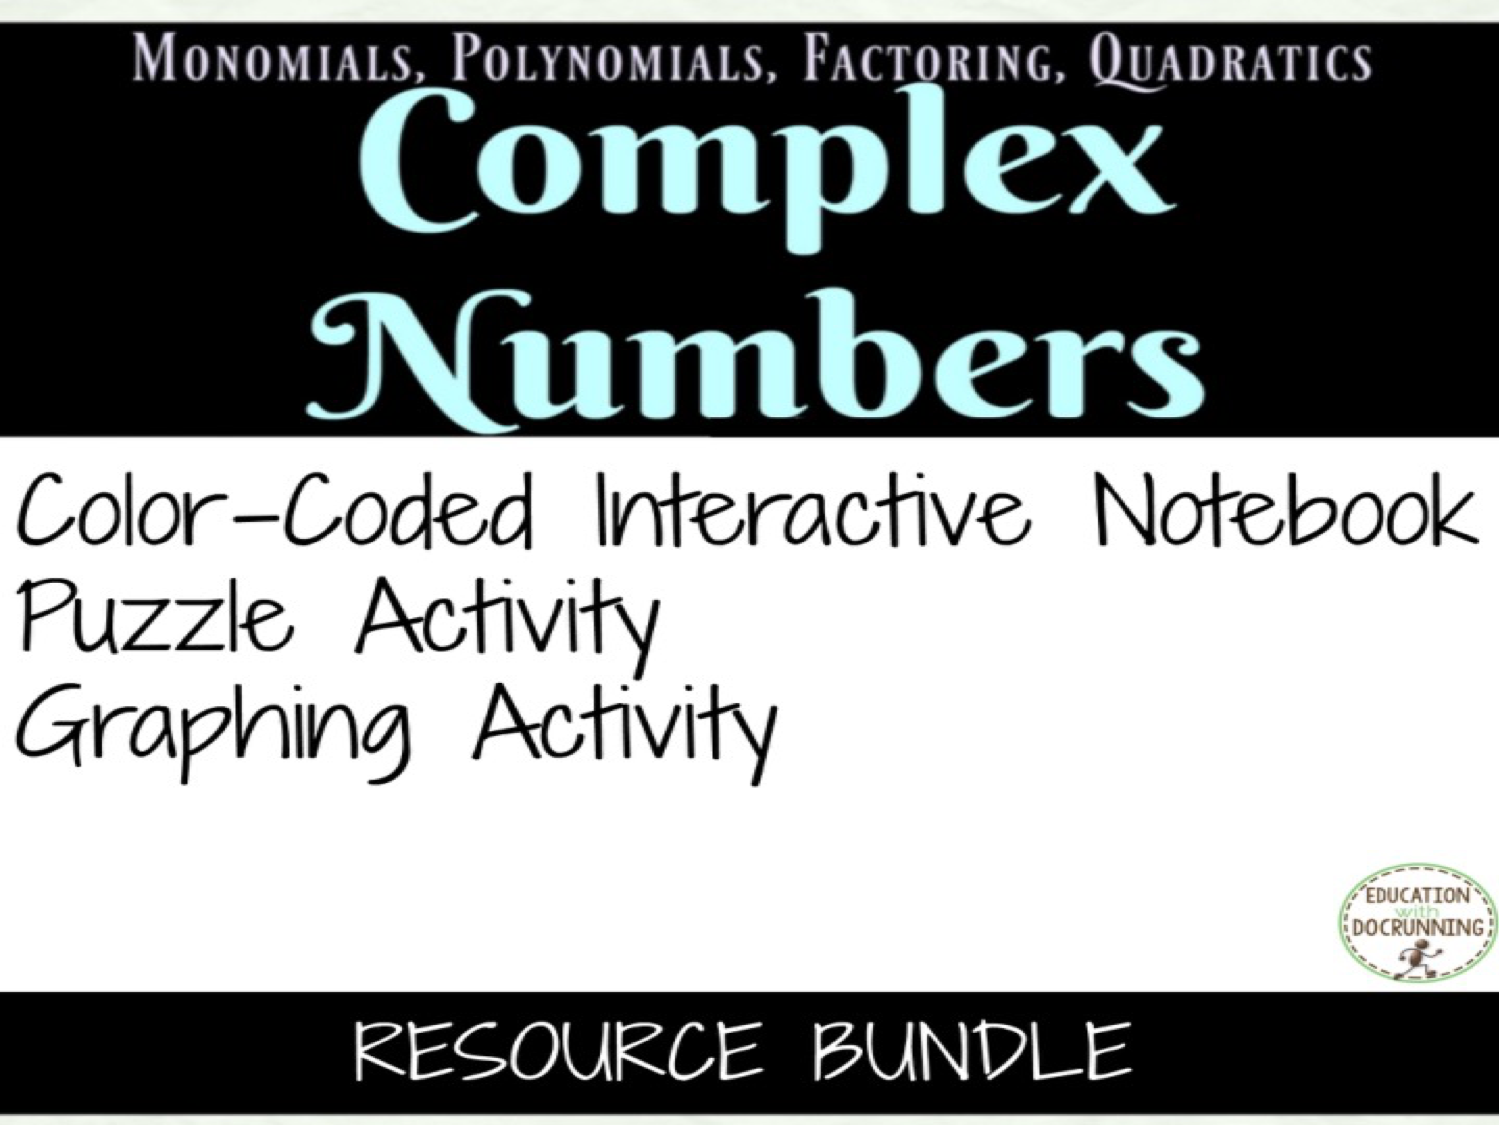 Complex Numbers Notes and Activities